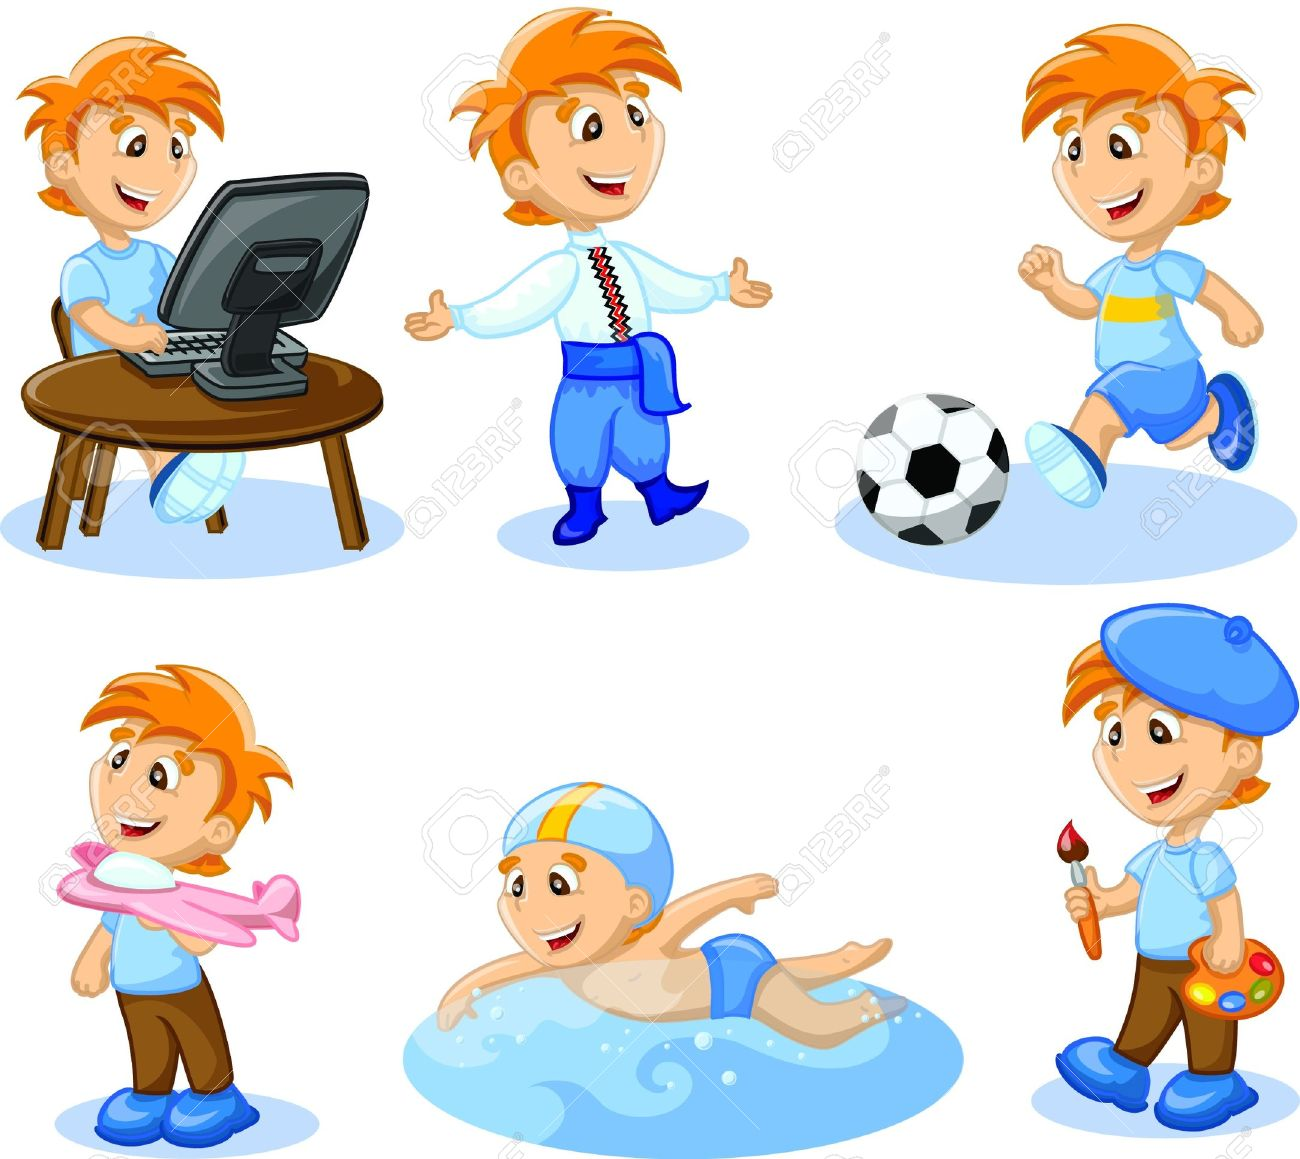 hobbies-clipart-18.jpg